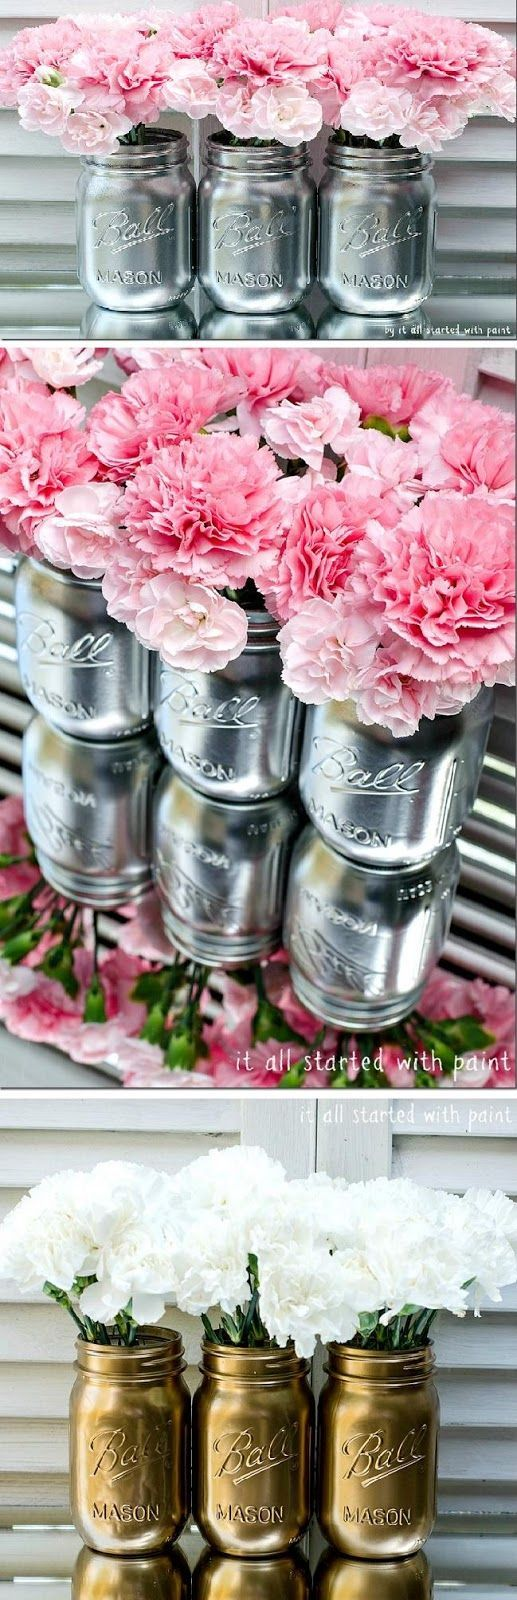 Pink flowers and white roses - Metallic painted mason jars!